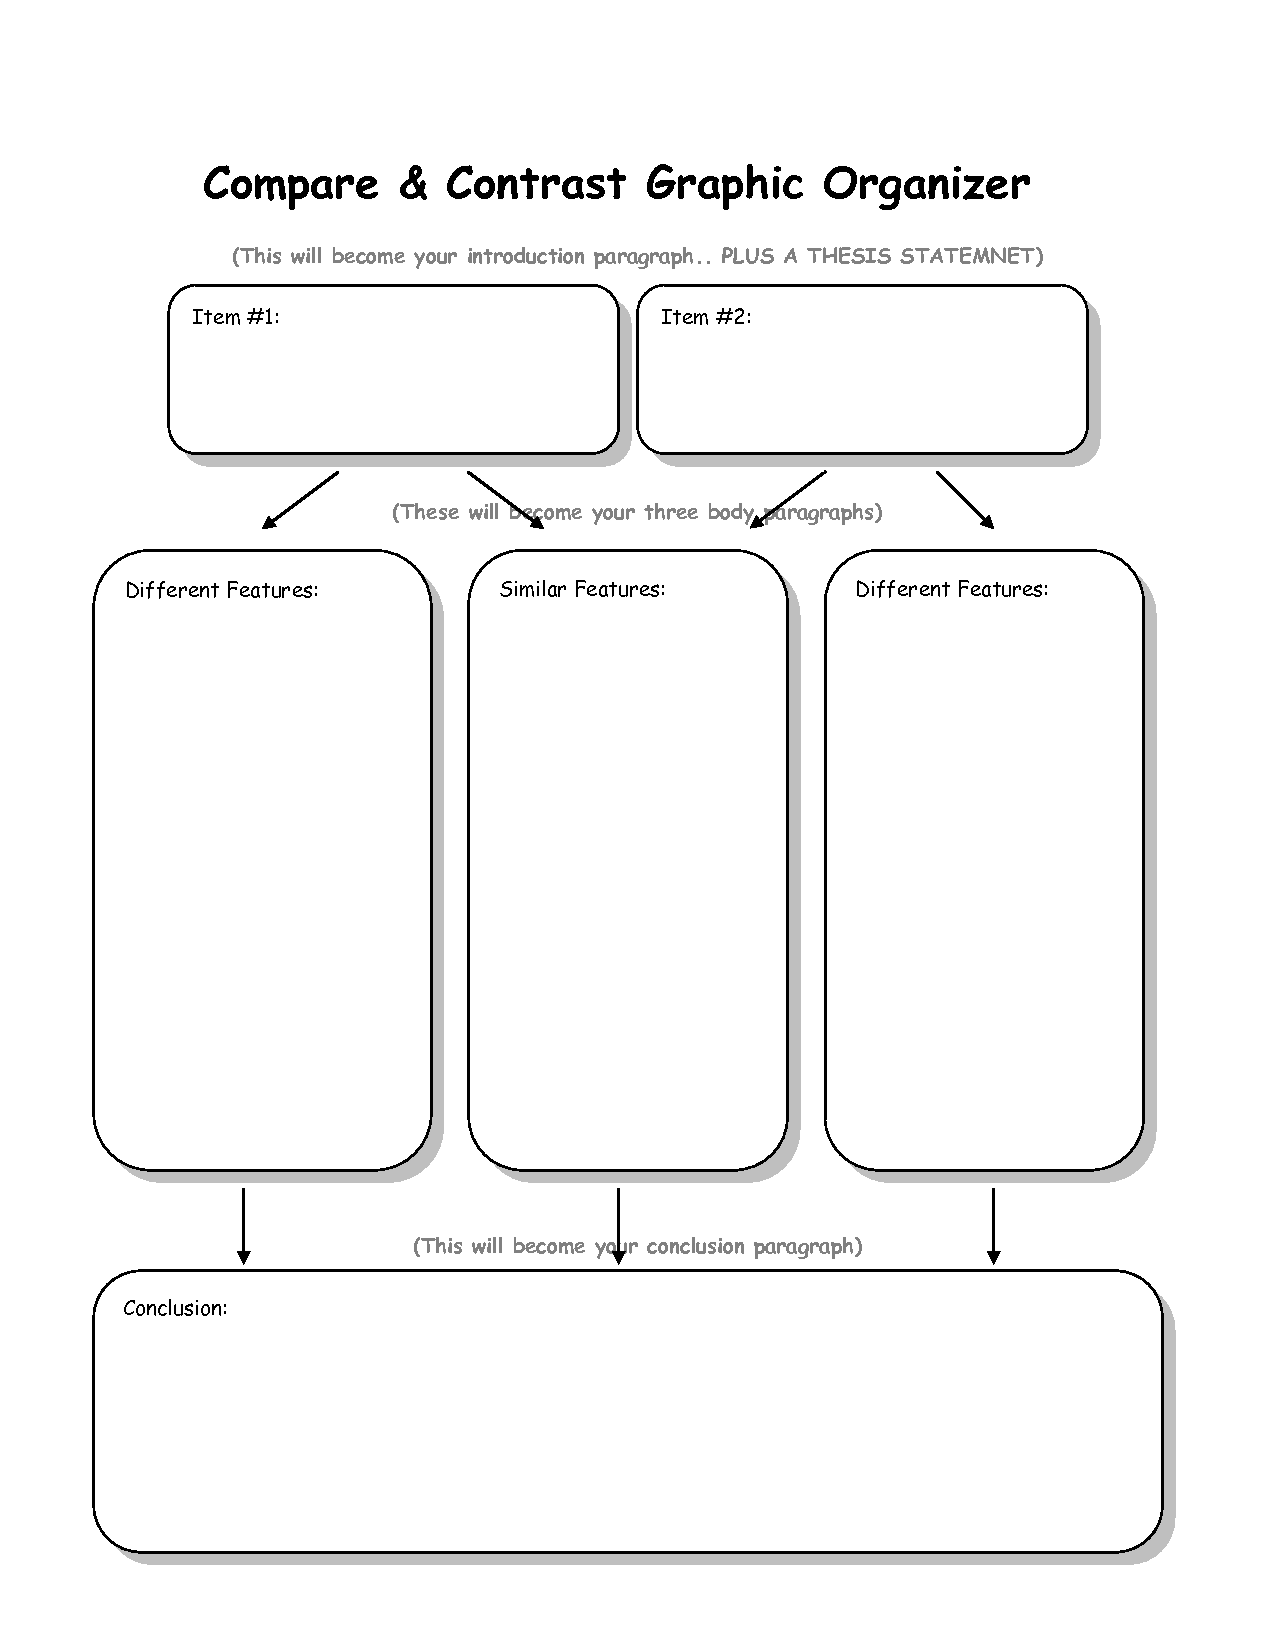 Compare And Contrast Graphic Organizer For 3 Things